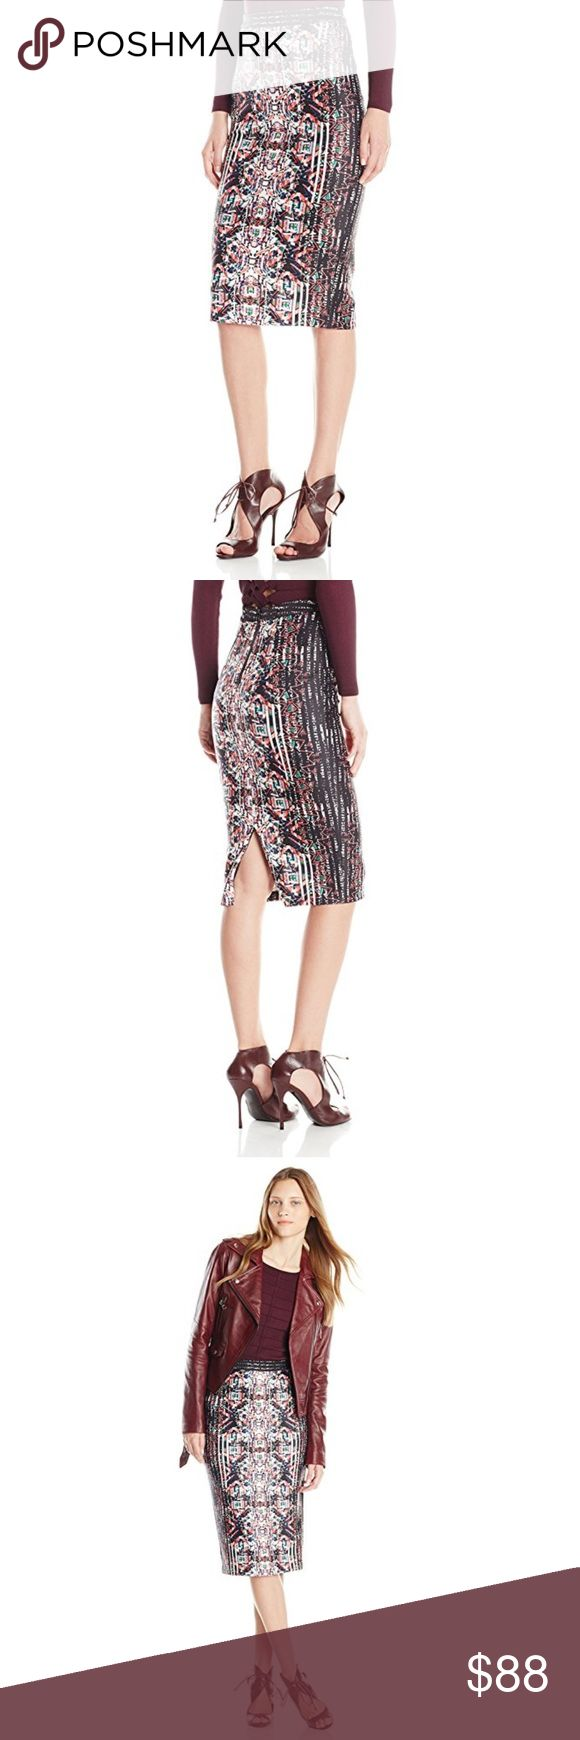 Parker Cascade Print Pencil Skirt Parker Cascade Print Pencil Skirt, Nebula, Size 0 95% Polyester/5% Spandex Imported Dry Clean Only Combination-print pencil skirt featuring vented back and exposed zipper closure Parker Skirts Midi